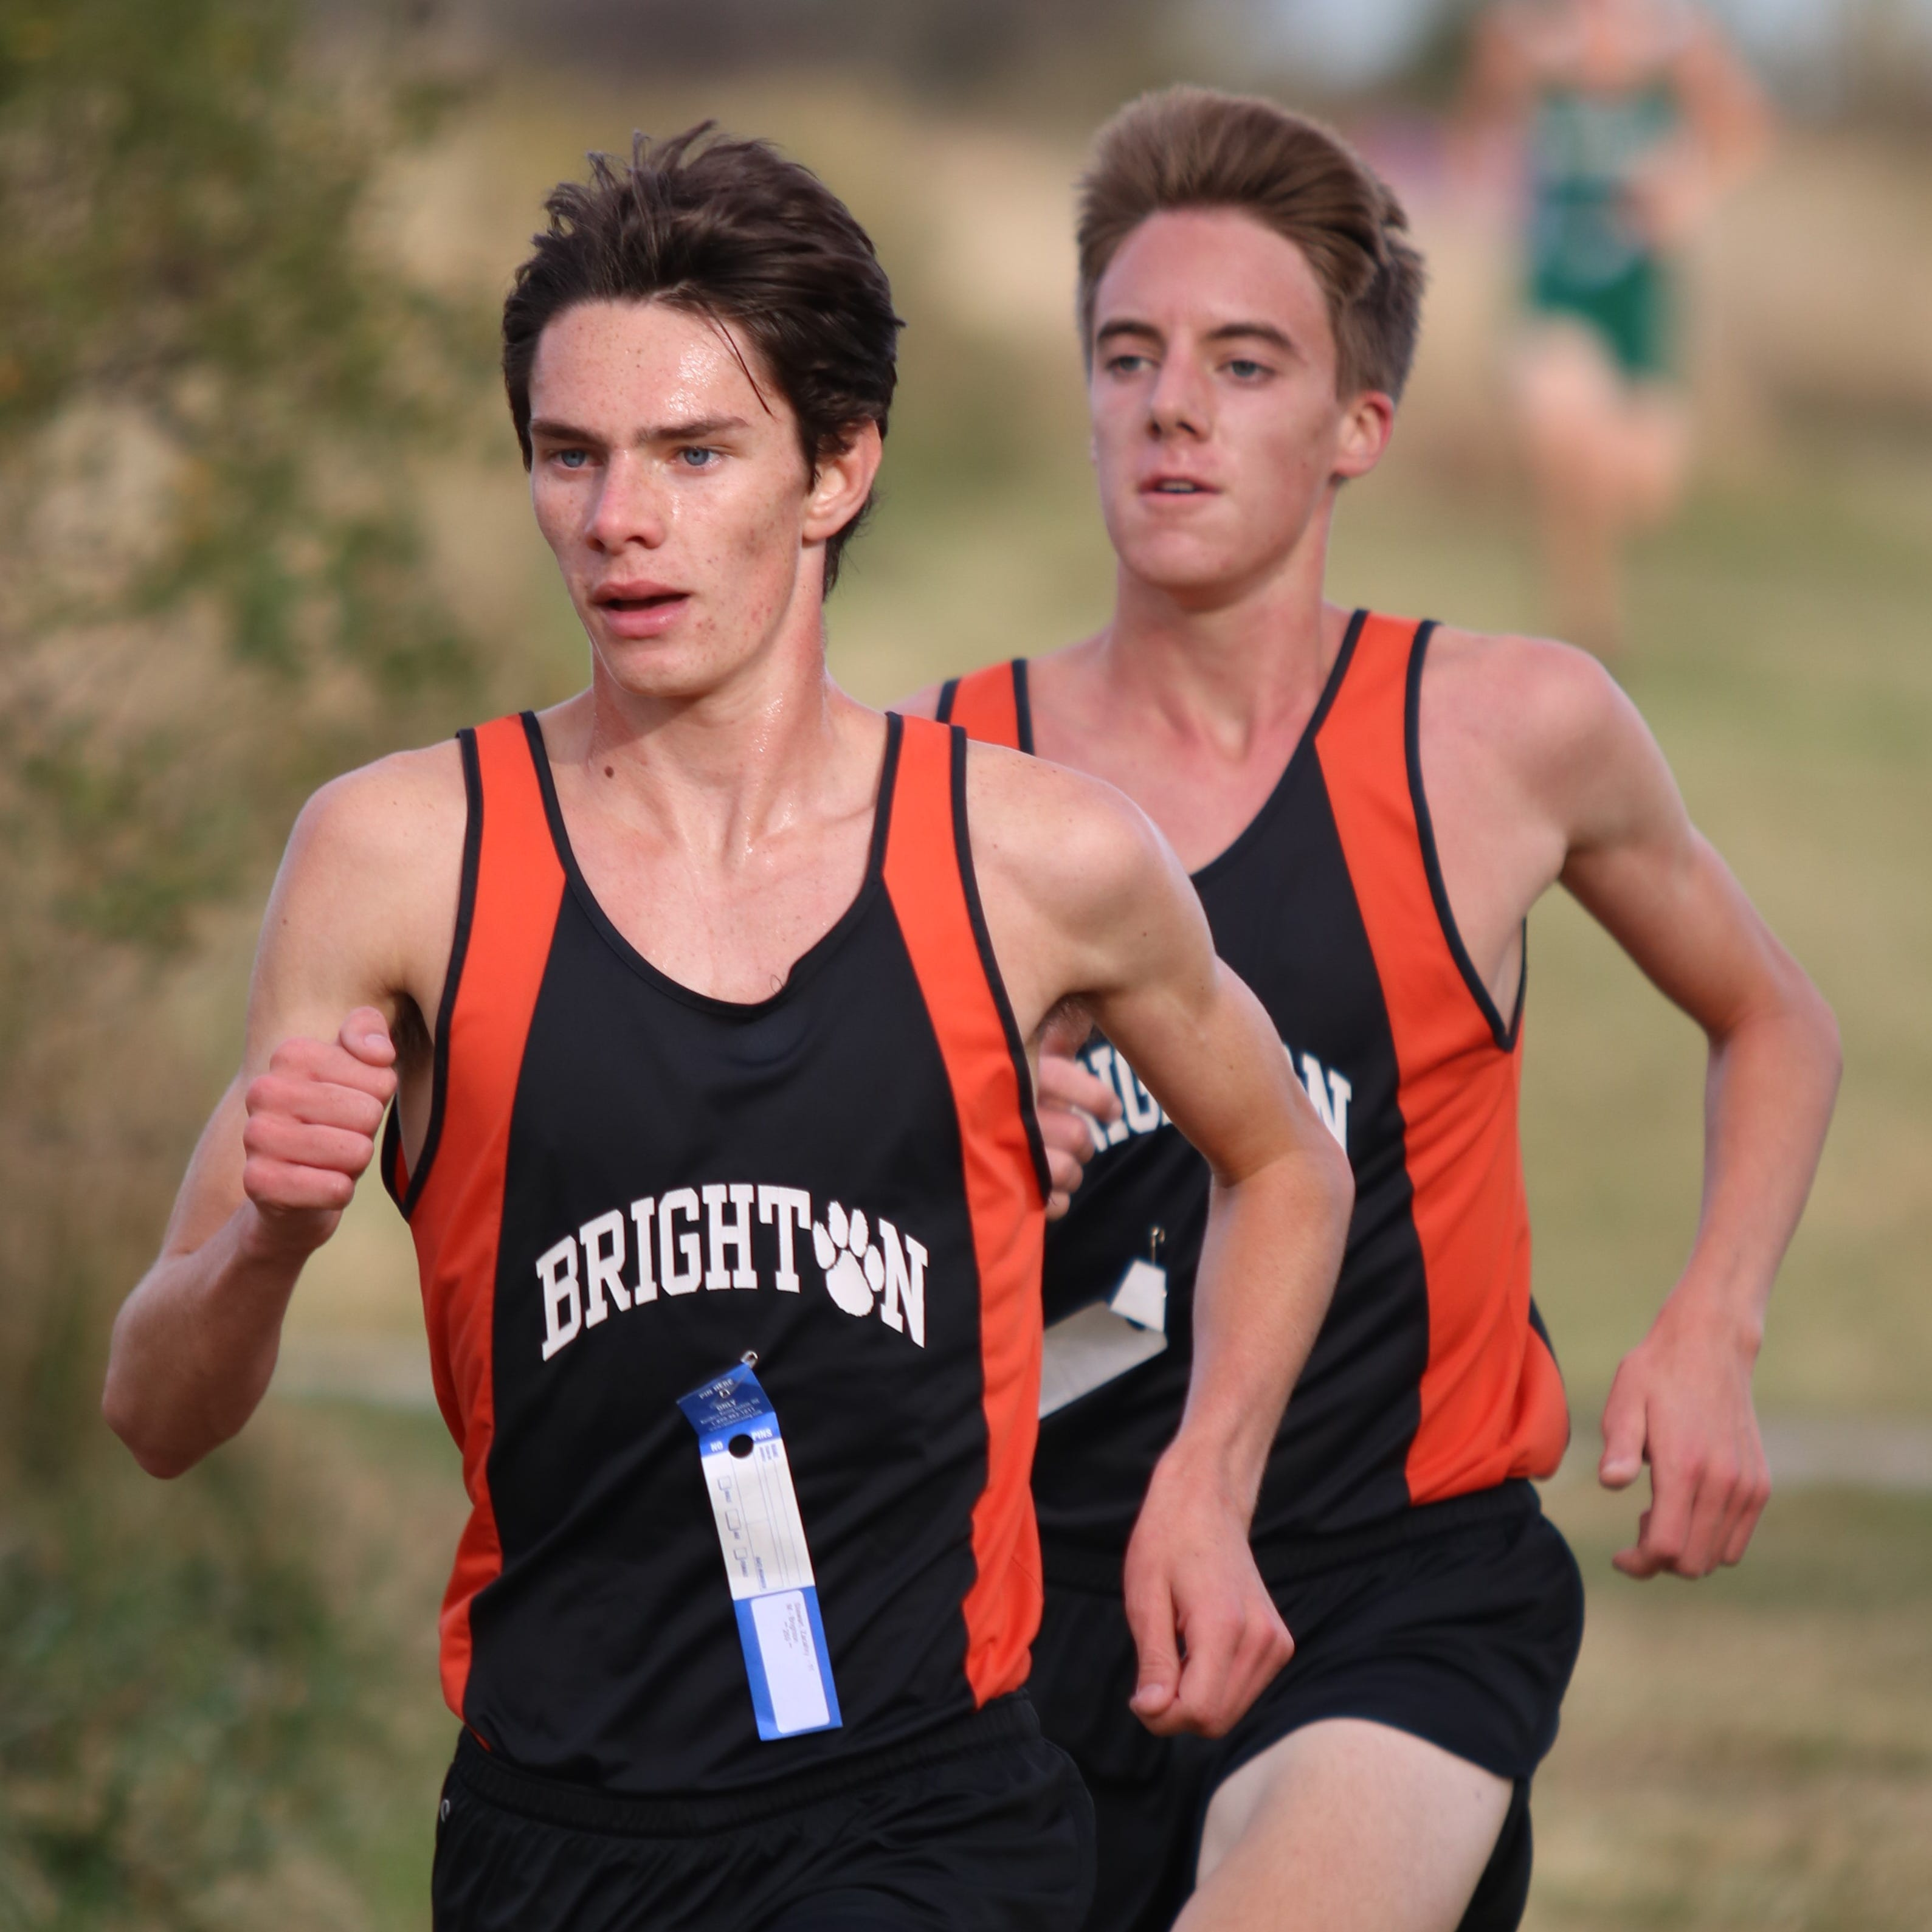 Two Brighton cross country runners break school record from 2002